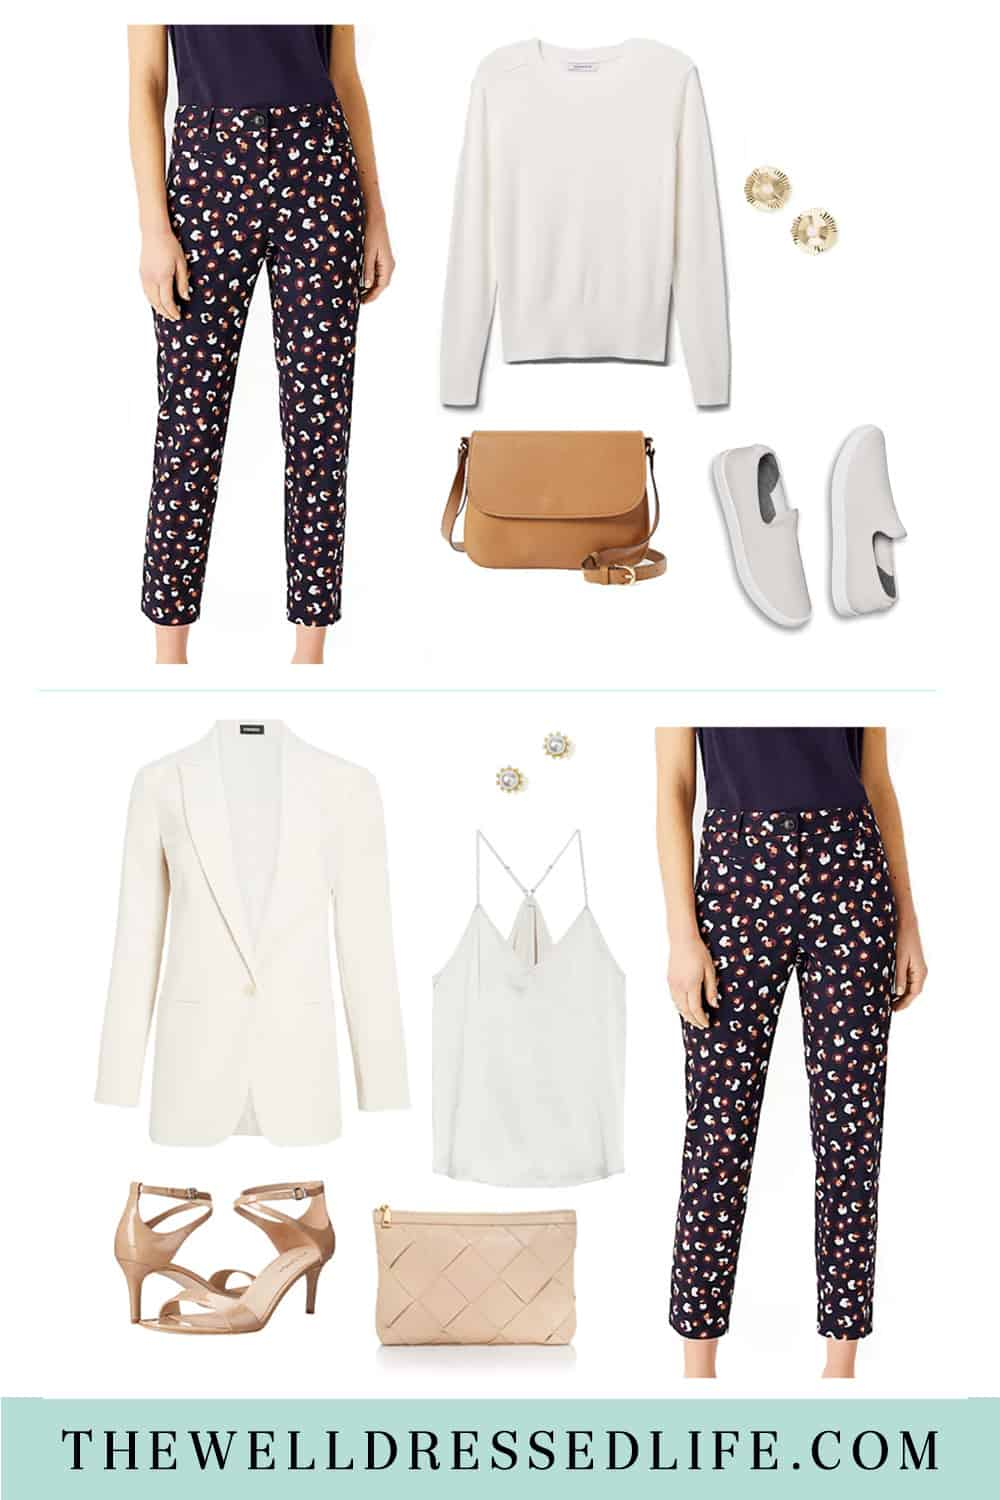 How to Style Print Pants for Day and Night